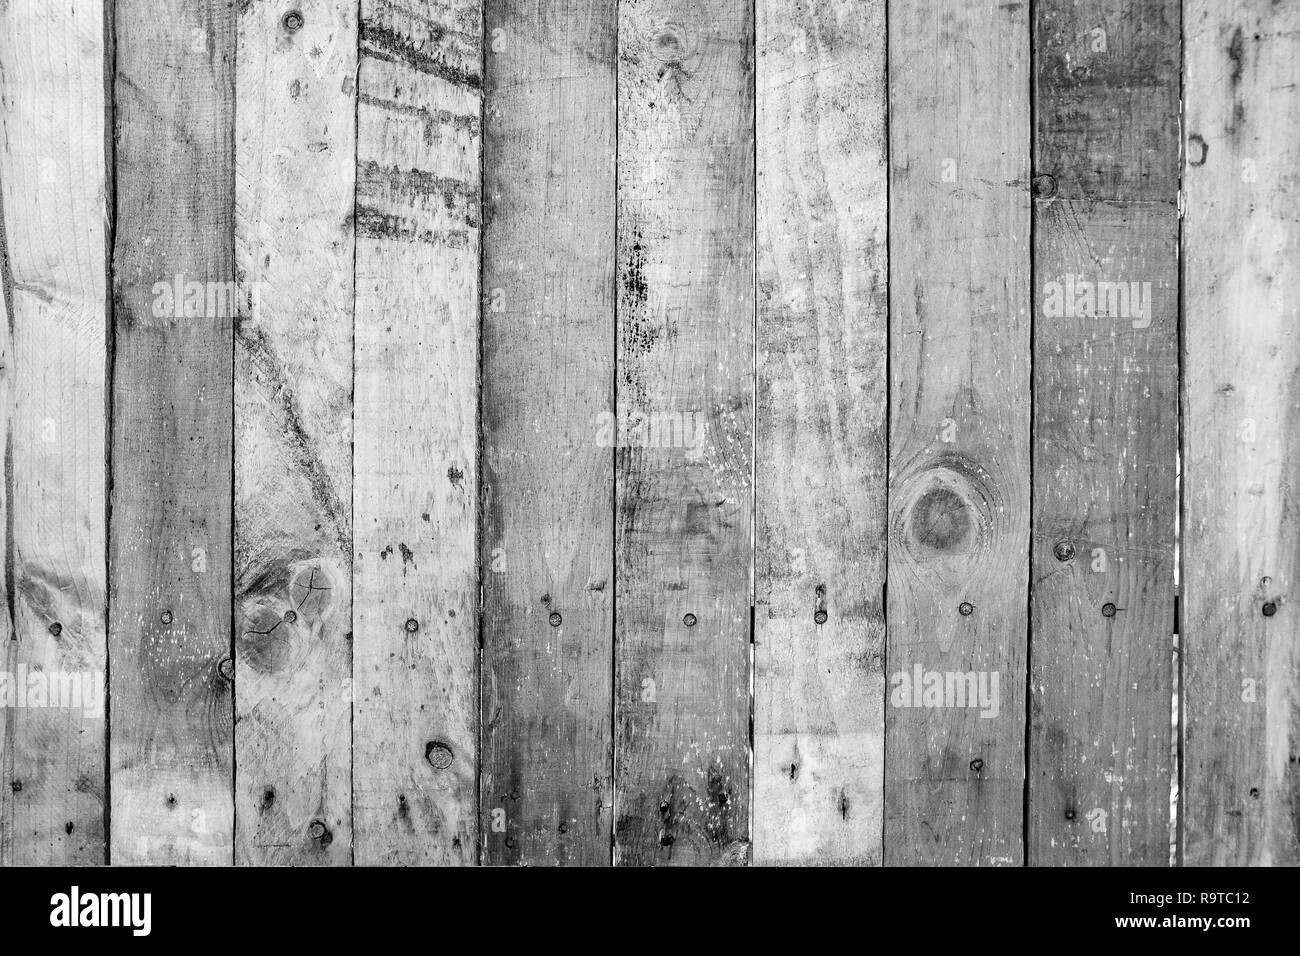 Black and White of old wood planks wall with scratched, dirty and rustic on textured surface. Abstract nature background. - Stock Image